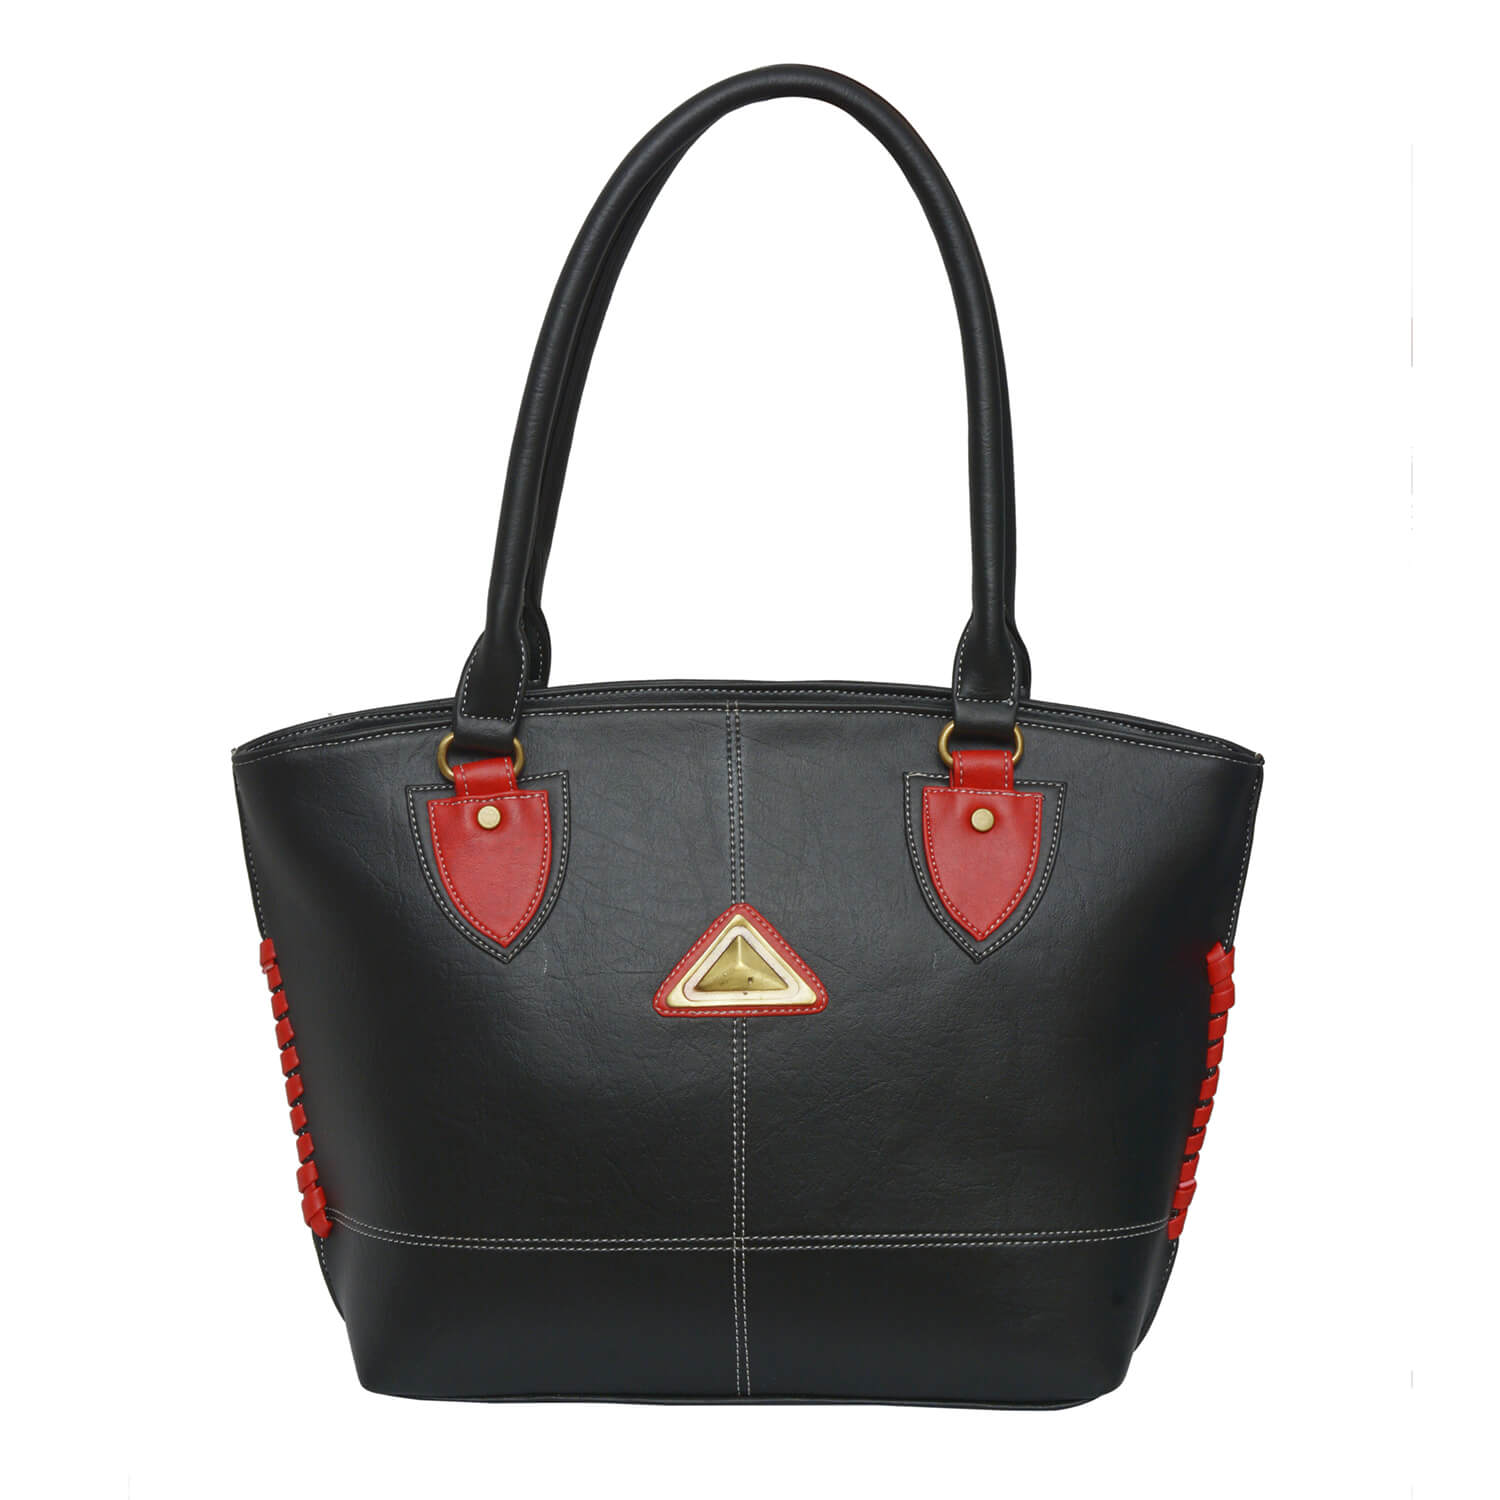 Right Choice RCH316 women's handbags in a modern type